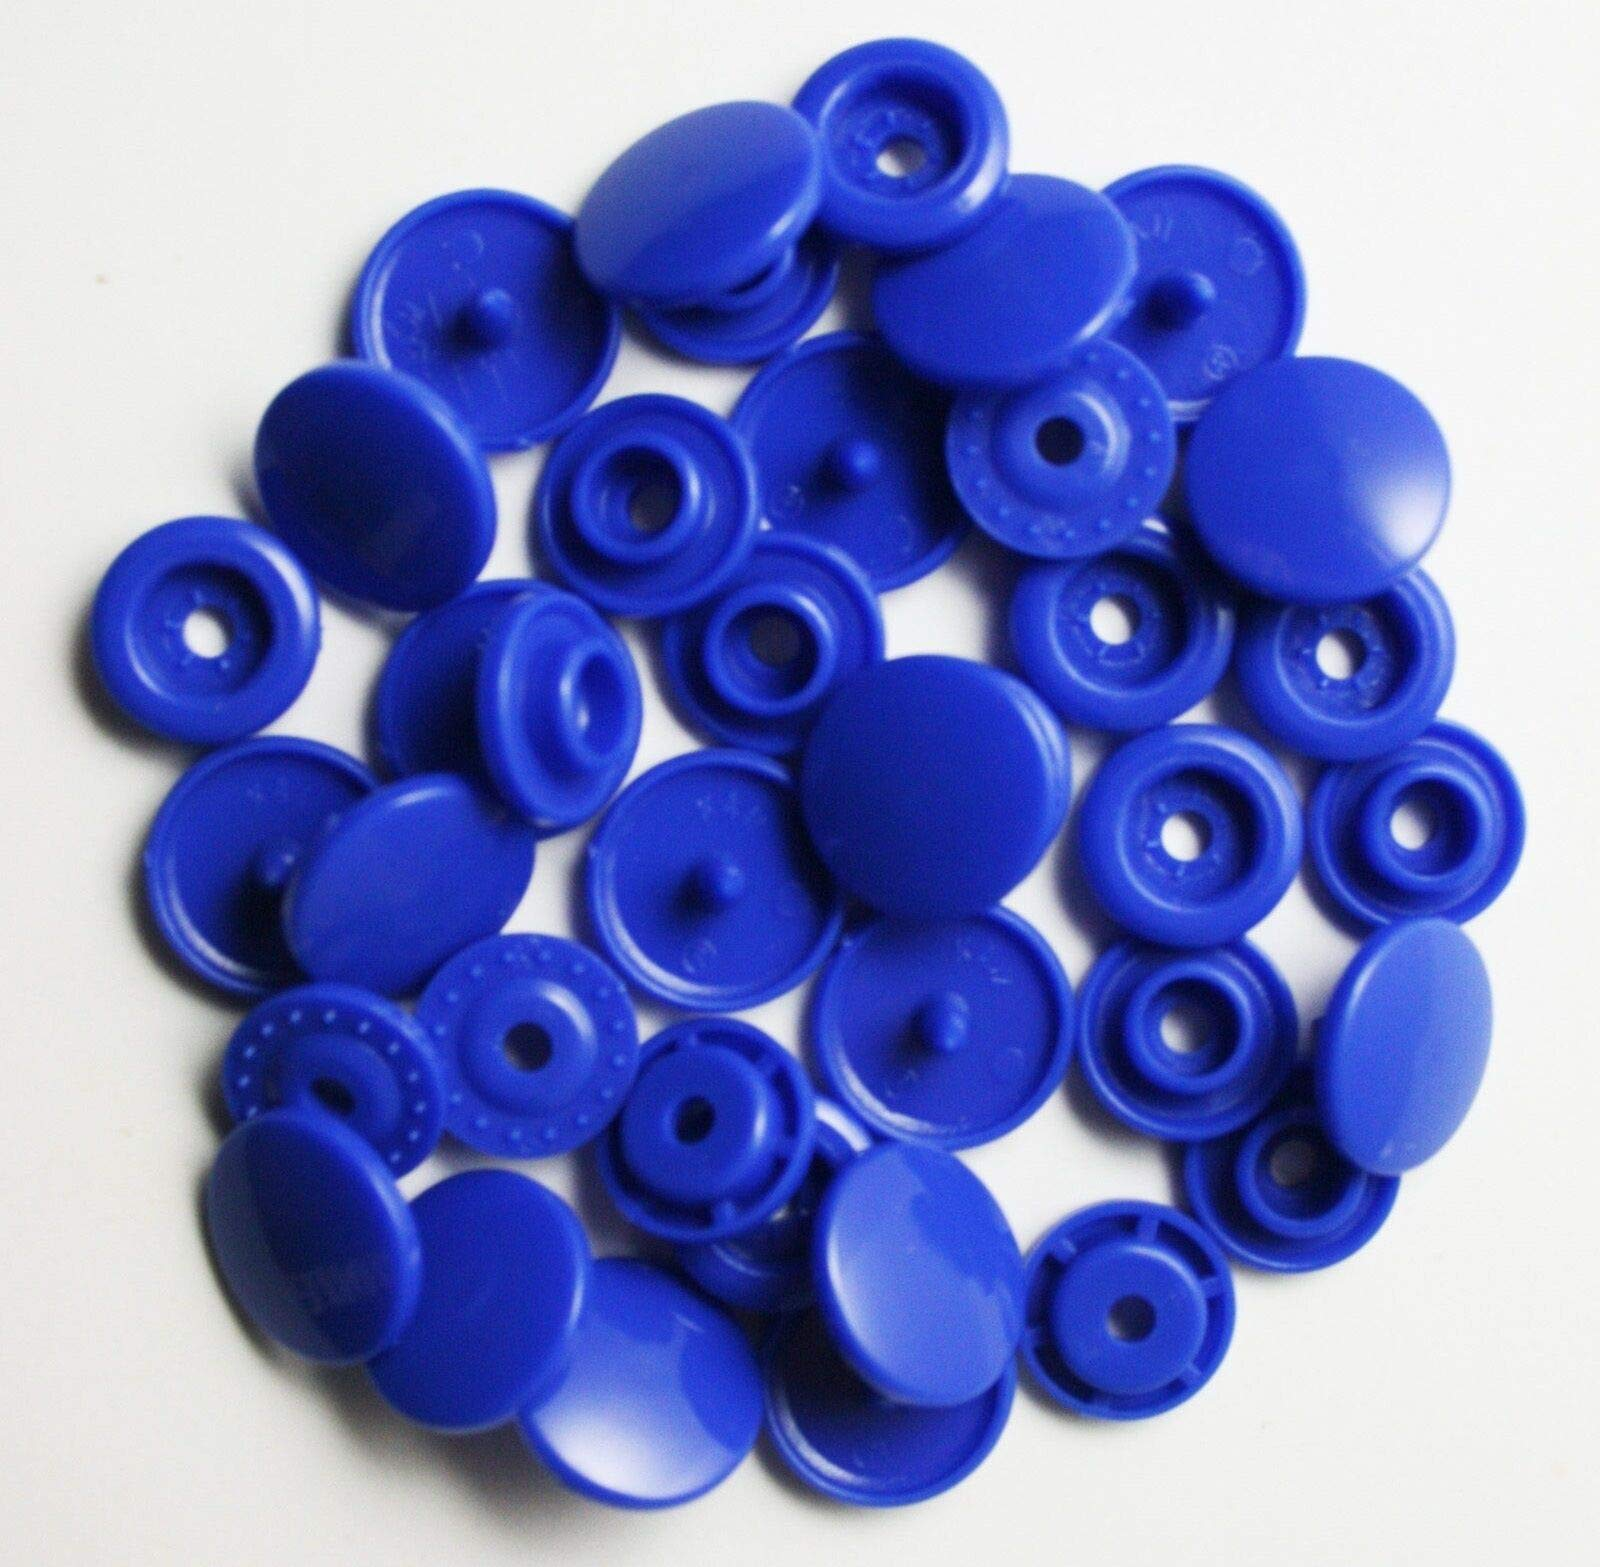 1000 Set Plastic Resin Snaps Crafts (Blue) WT by Eternal Cover